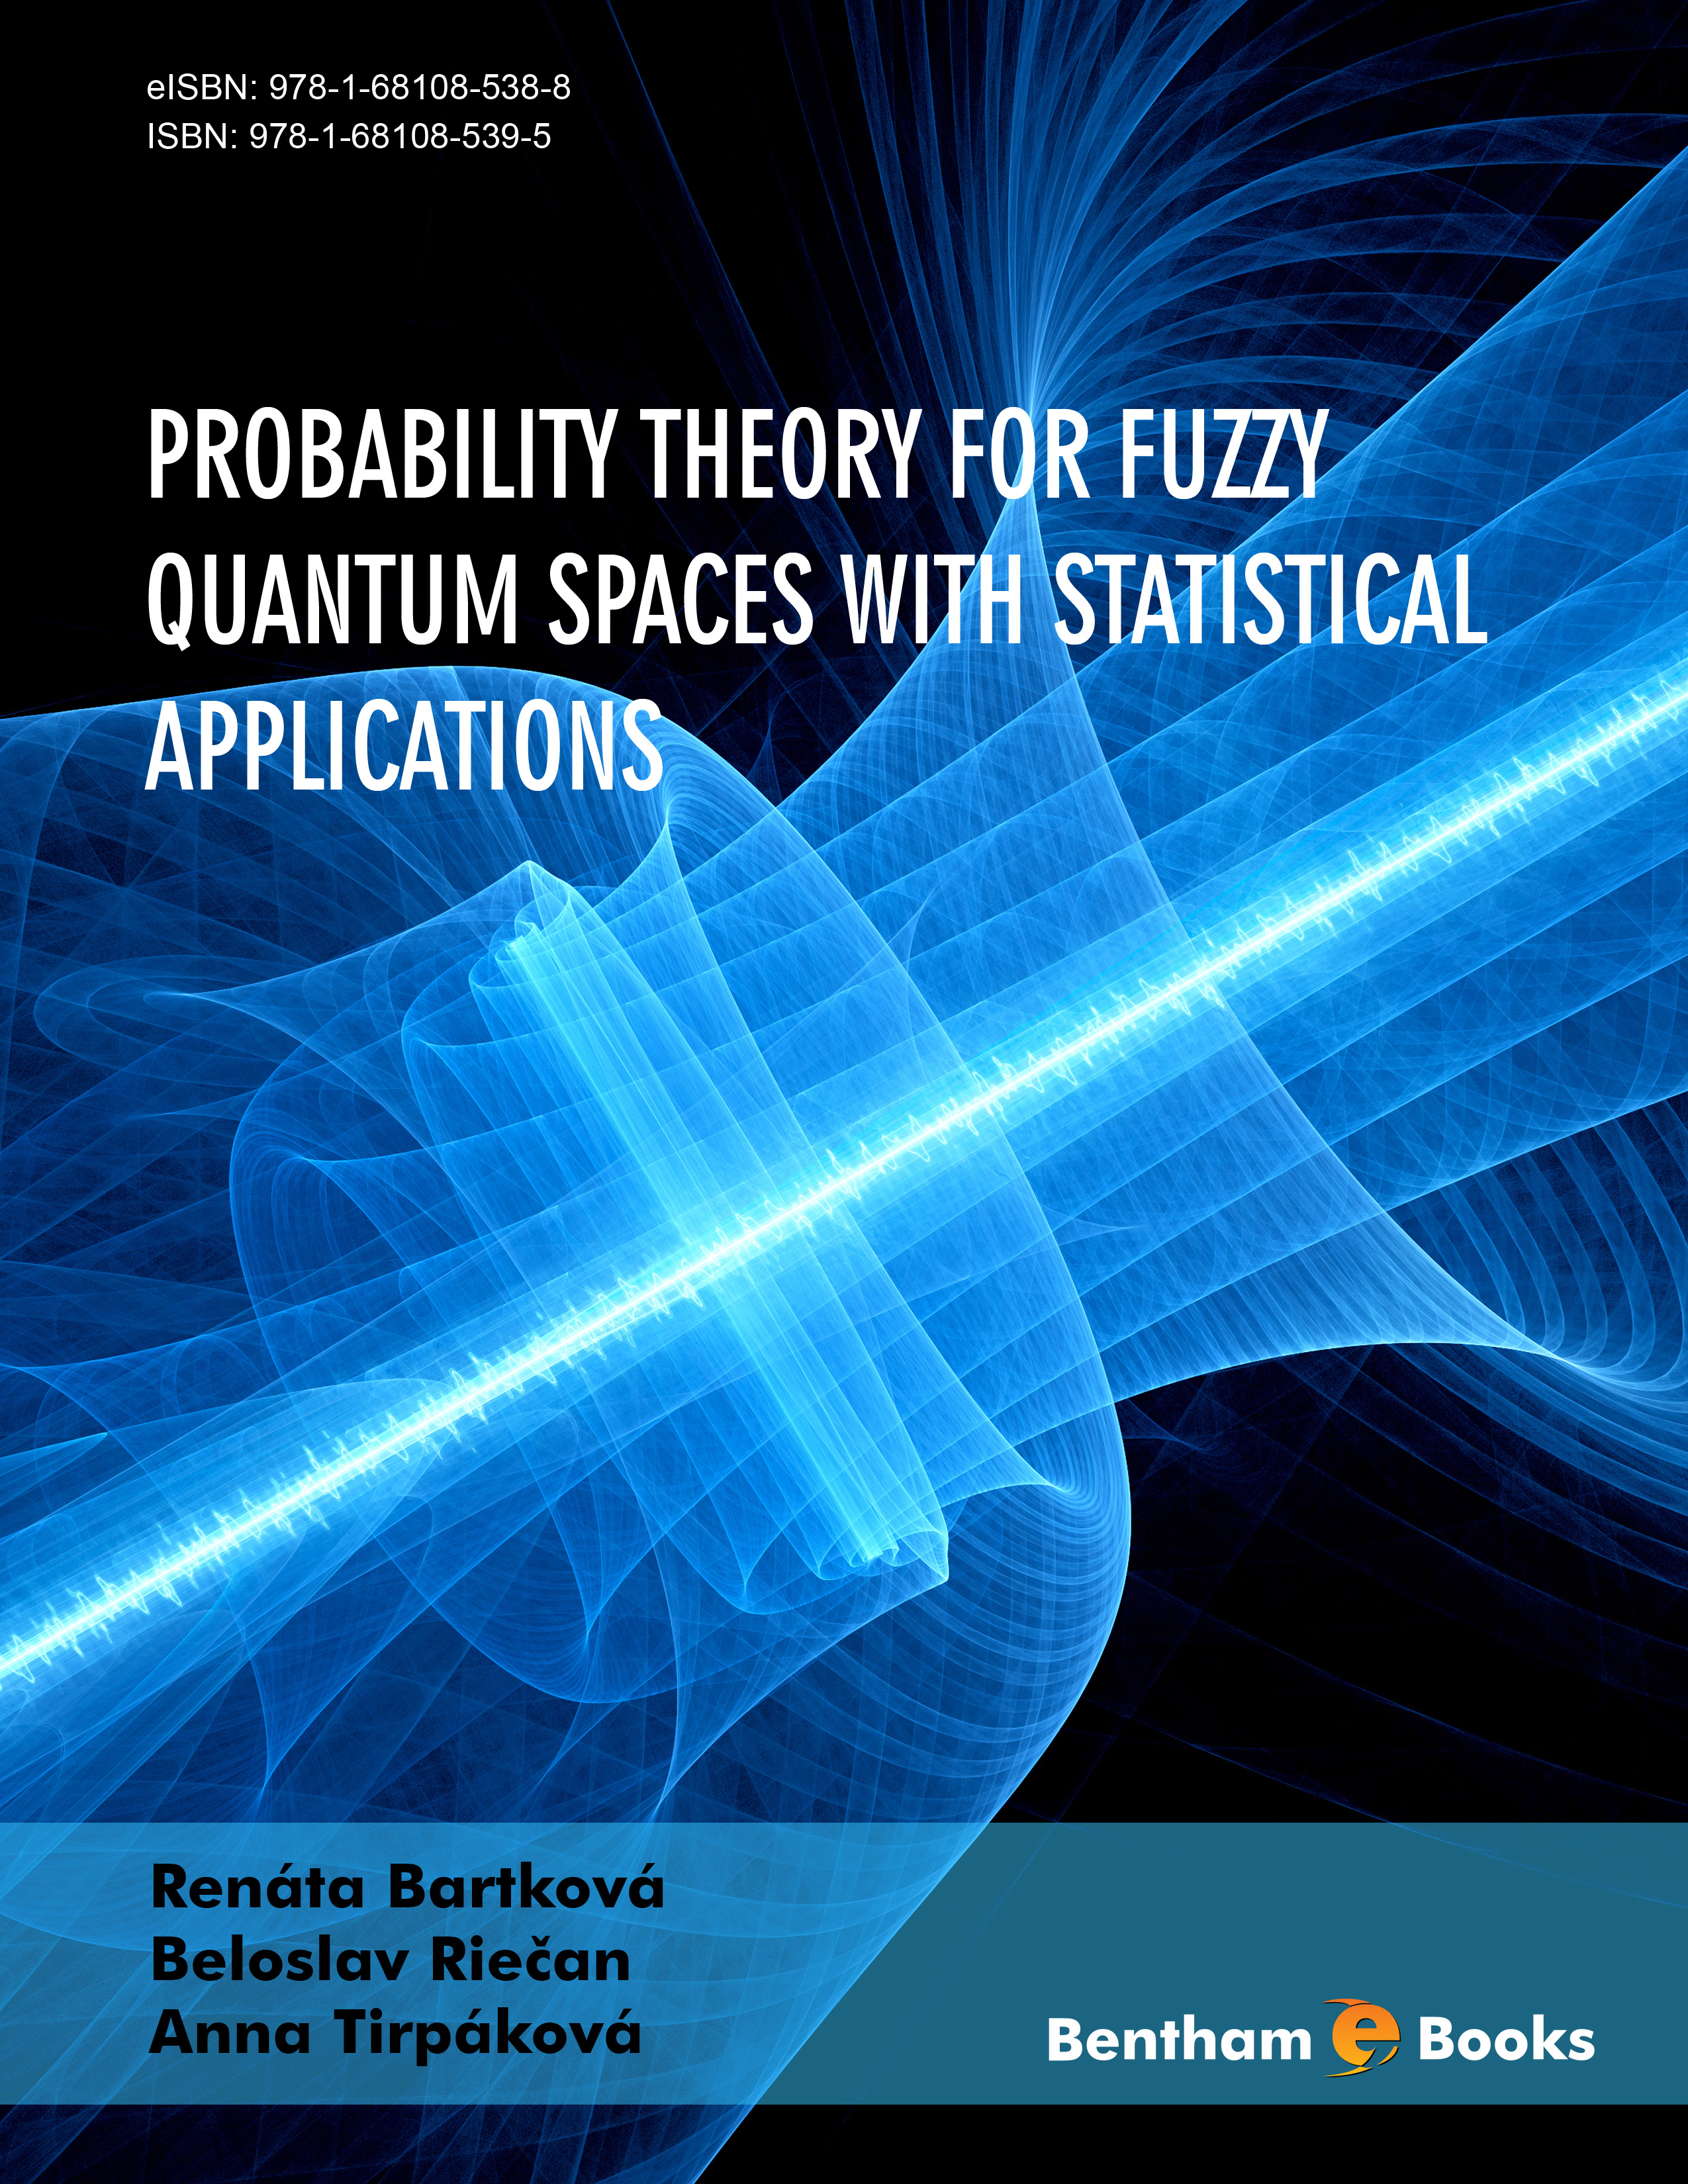 Probability Theory for Fuzzy Quantum Spaces with Statistical Applications